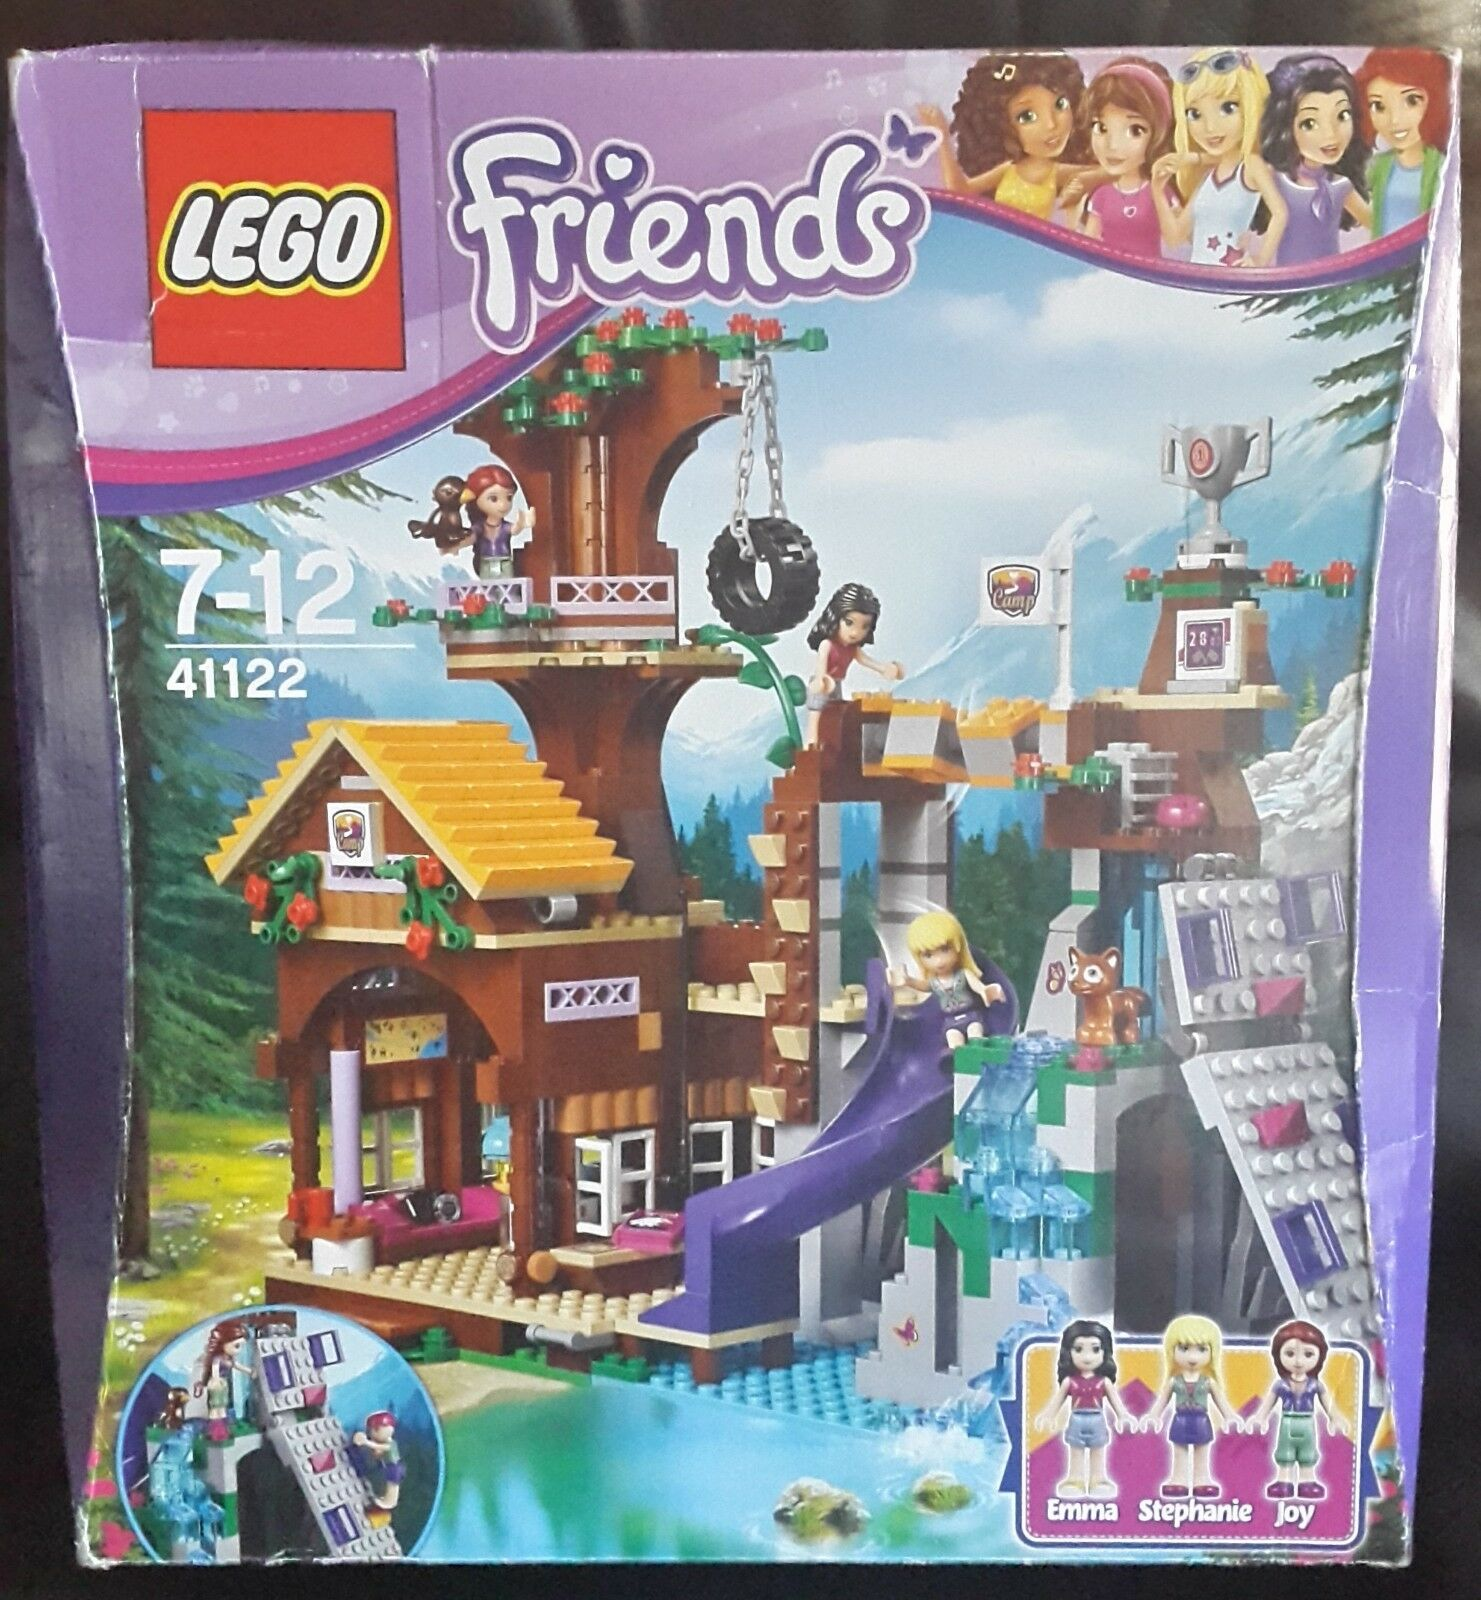 New & Sealed - LEGO Friends 41122 Adventure Camp Tree House - creases in box